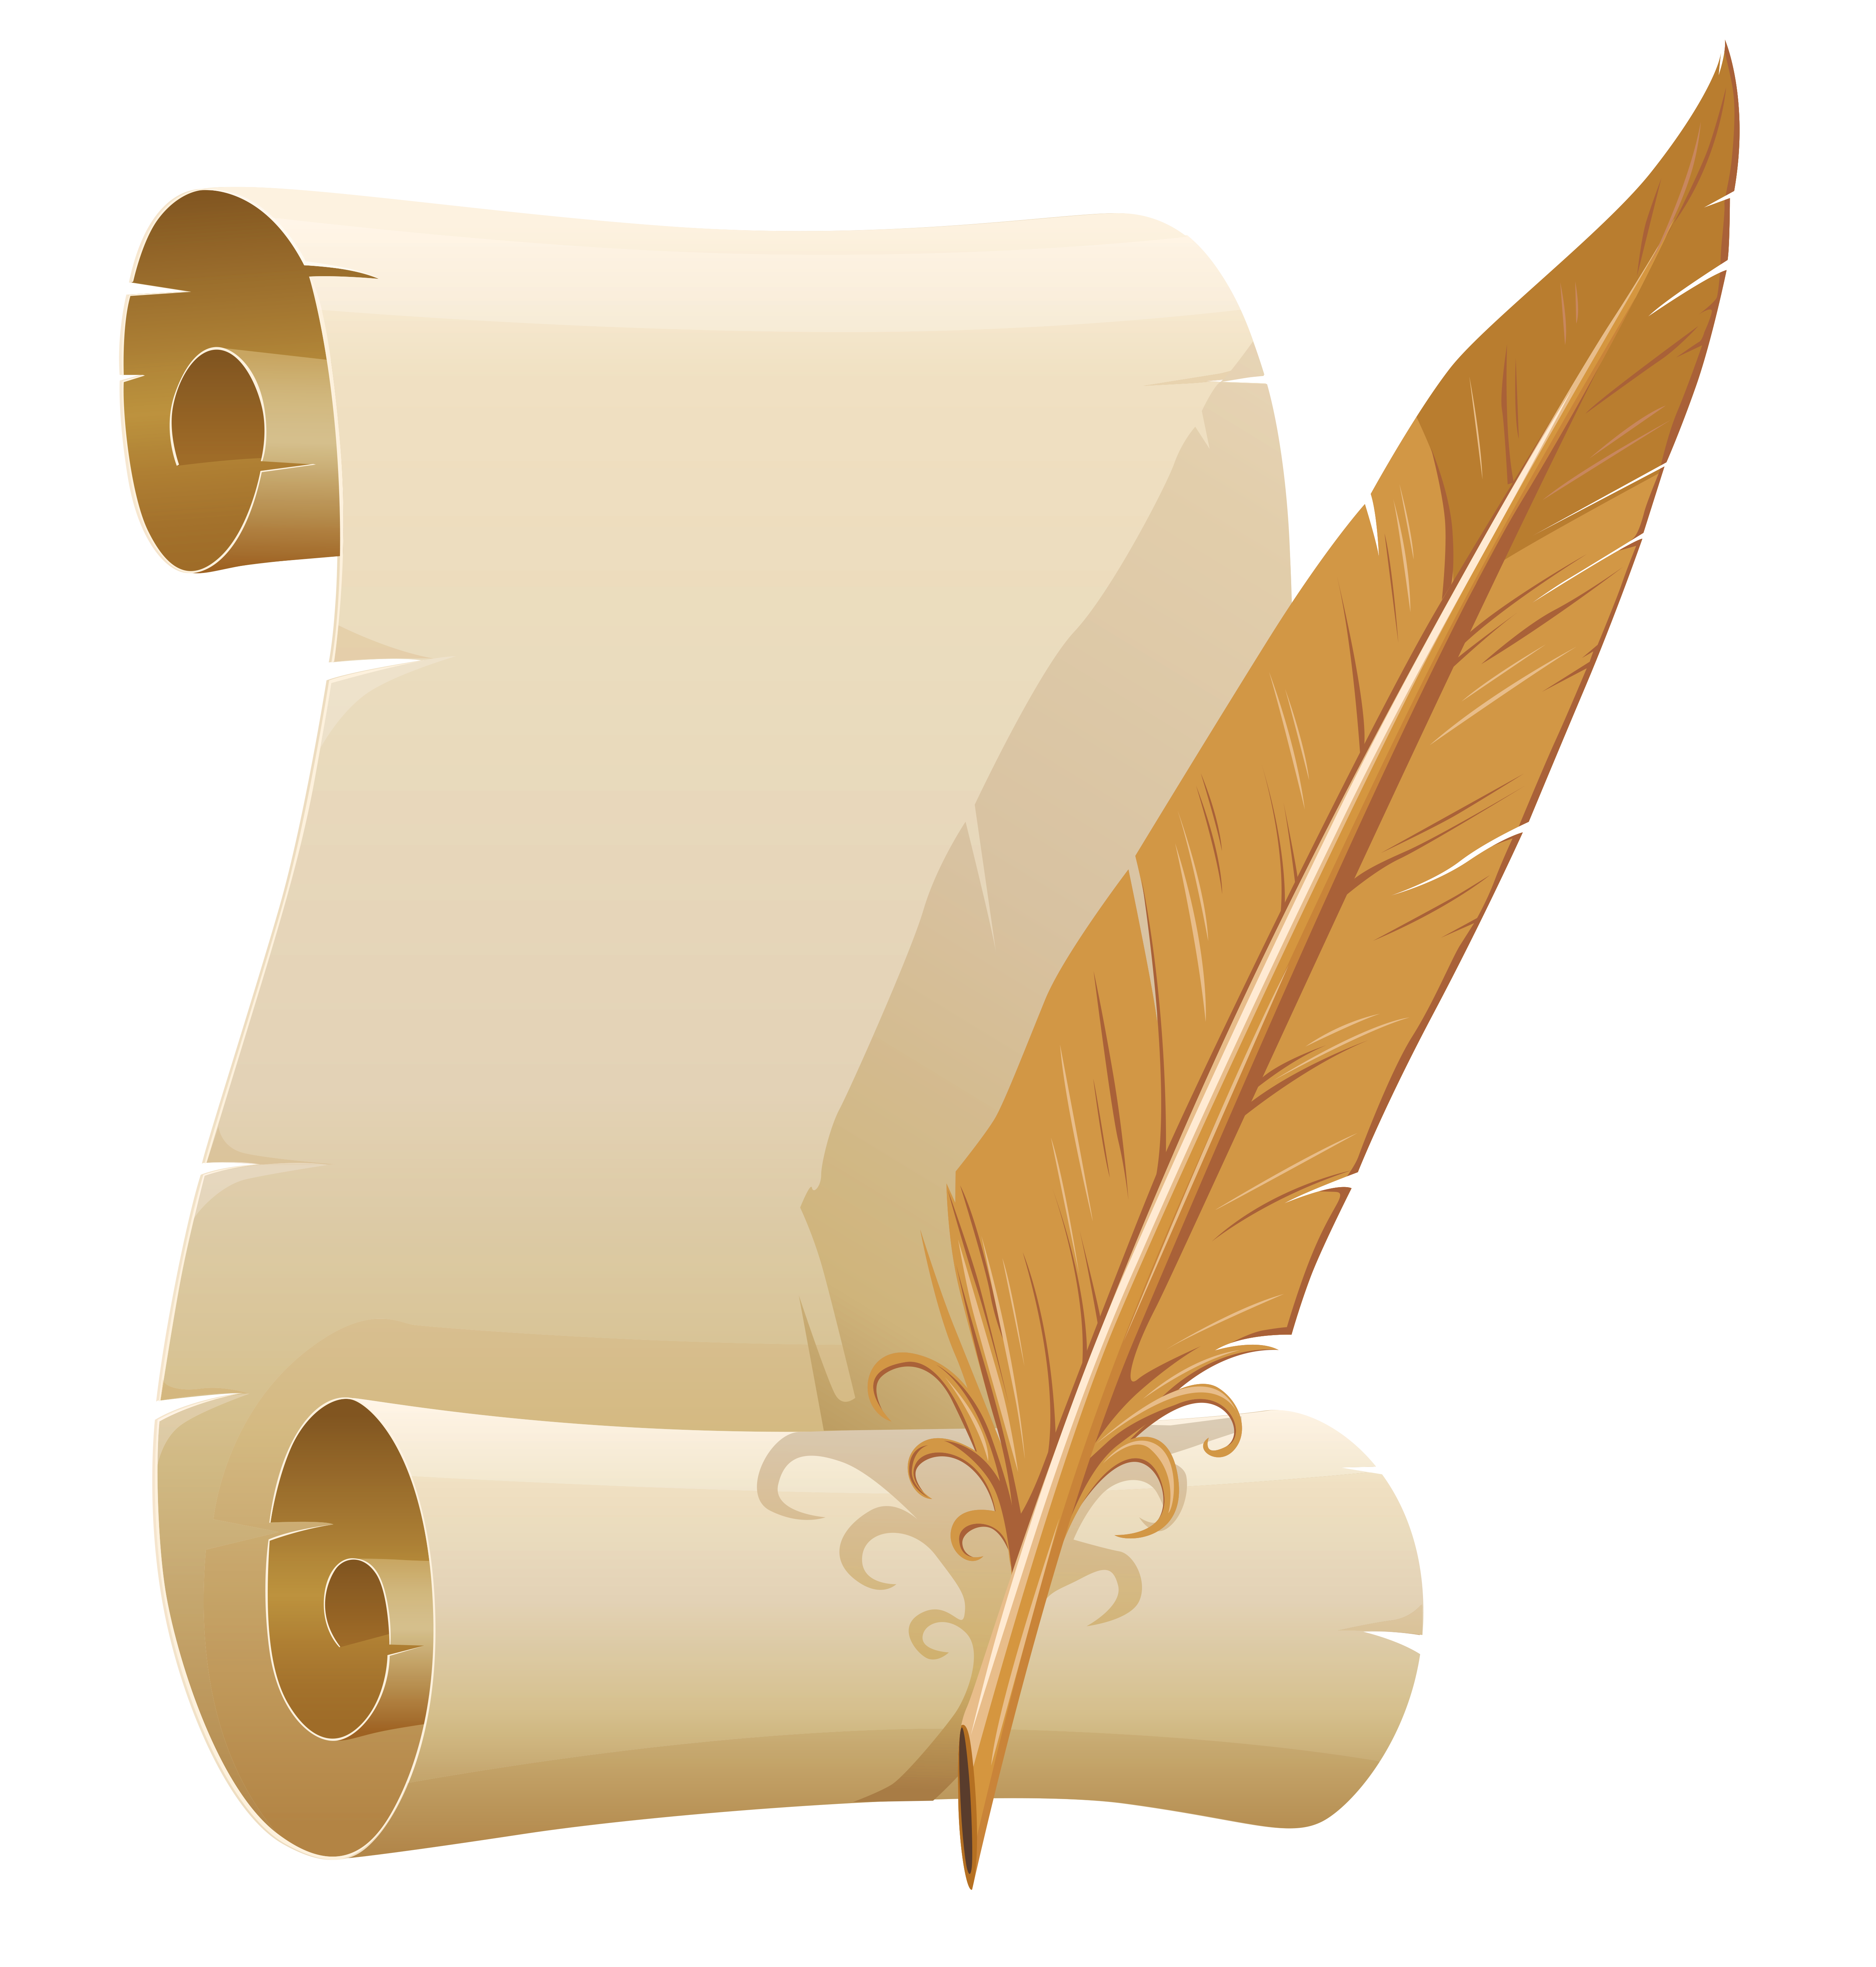 Scrolled and quill pen. Feather clipart paper